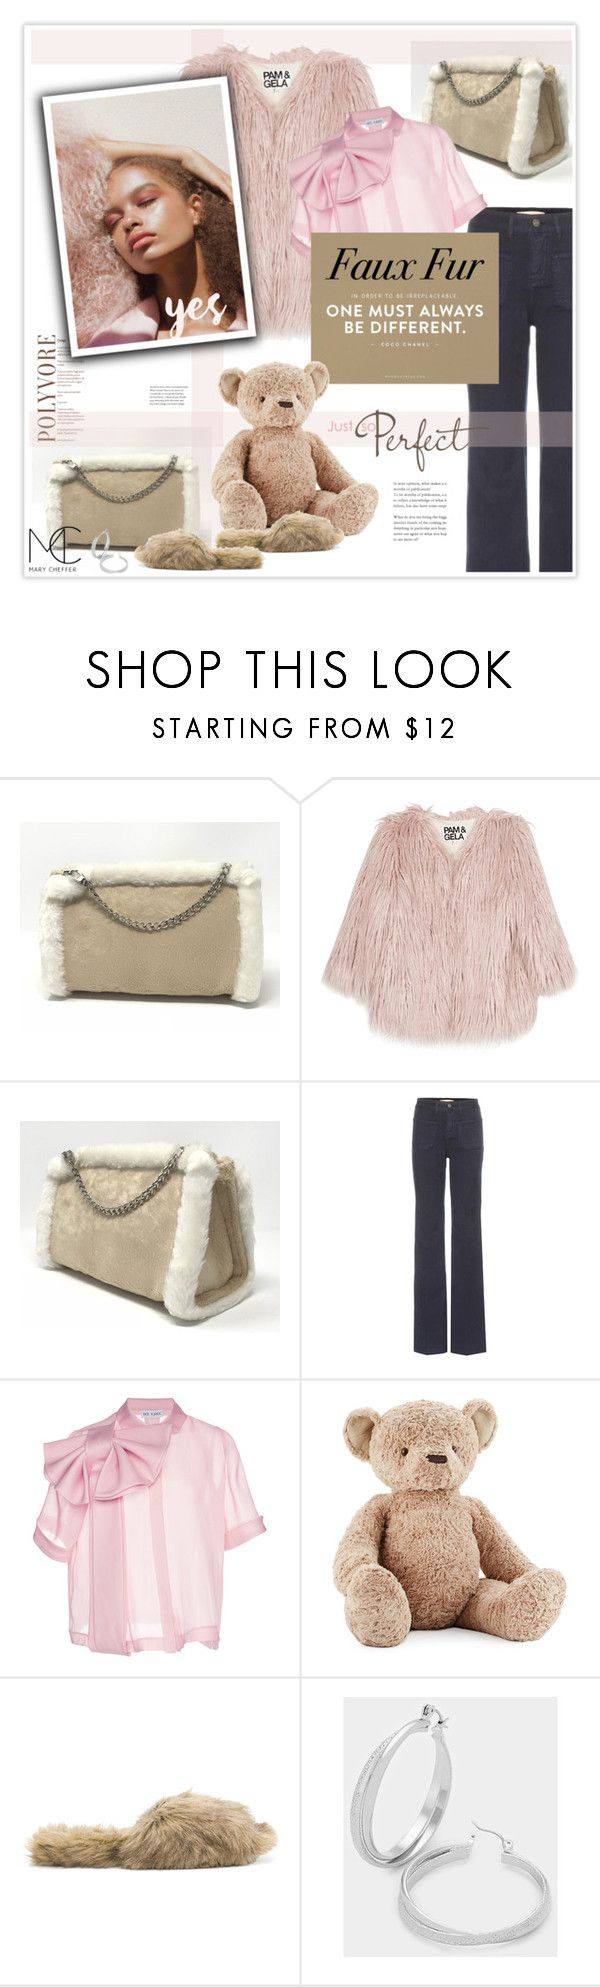 """""""One must always be different"""" by mcheffer ❤ liked on Polyvore featuring Pam & Gela, Vanessa Bruno, Dice Kayek, Jellycat, Simone Rocha, mcheffer, marycheffer and marycheffertictail"""